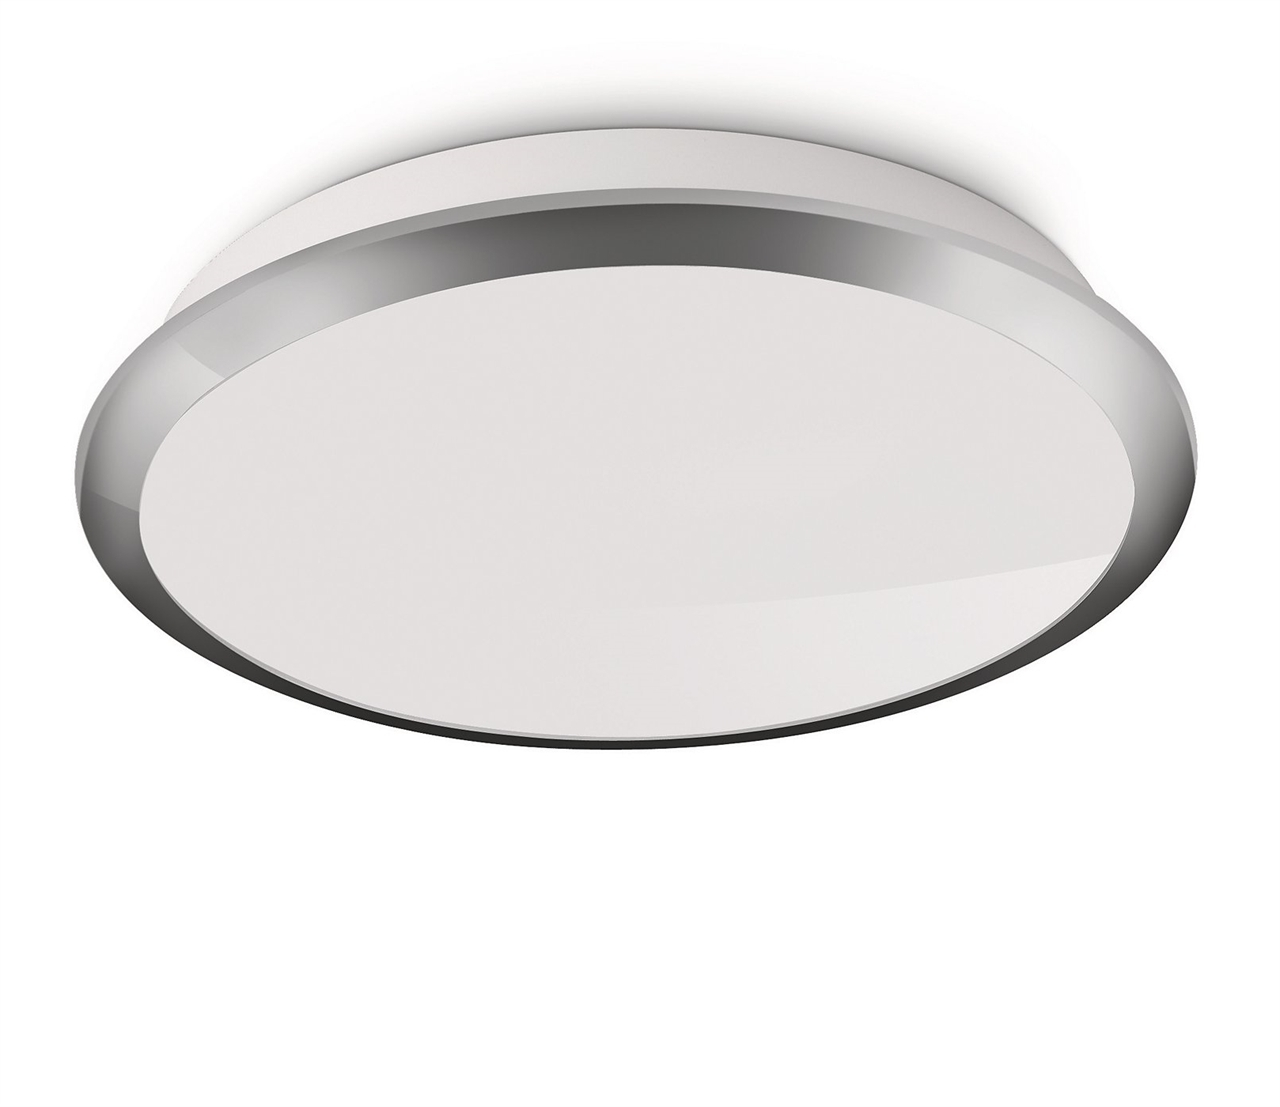 Philips Outdoor Ceiling Lights In Well Known K Lighting Supplies – Indoor, Outdoor & Led Lighting Specialists (View 8 of 20)